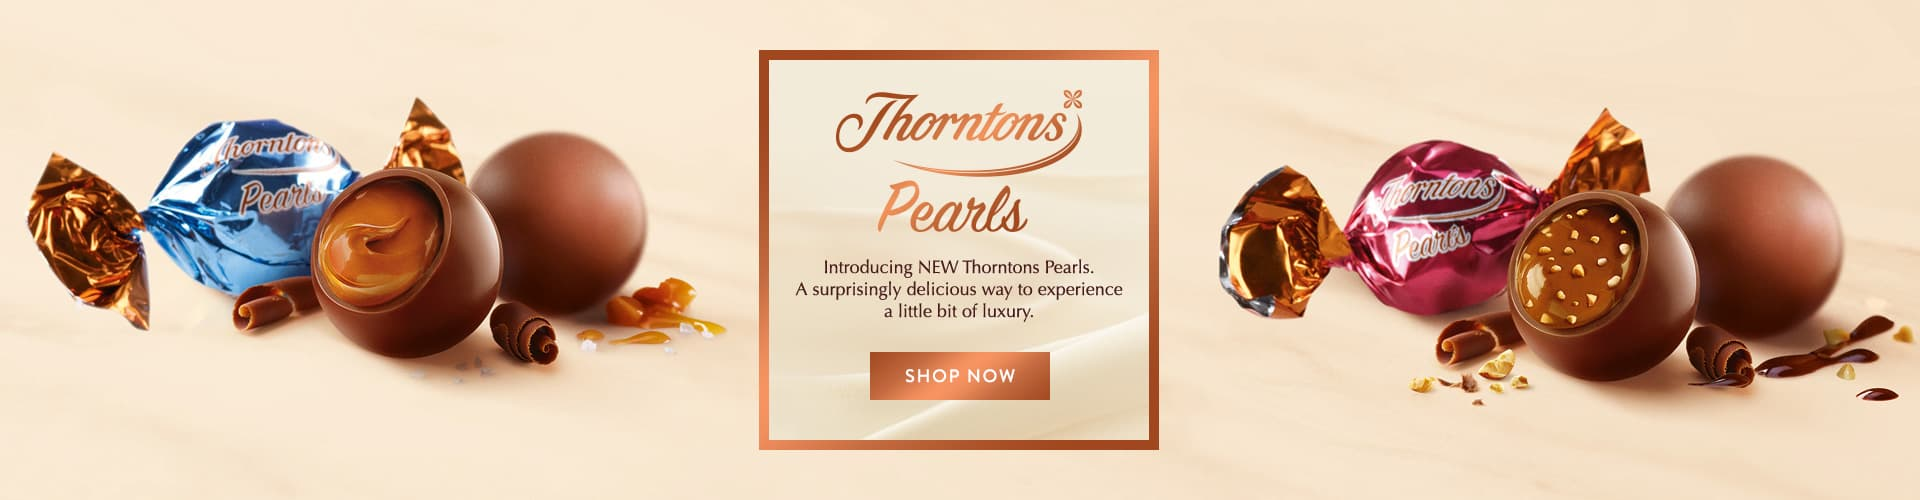 six individual Thorntons Pearls wrapped and unwrapped.